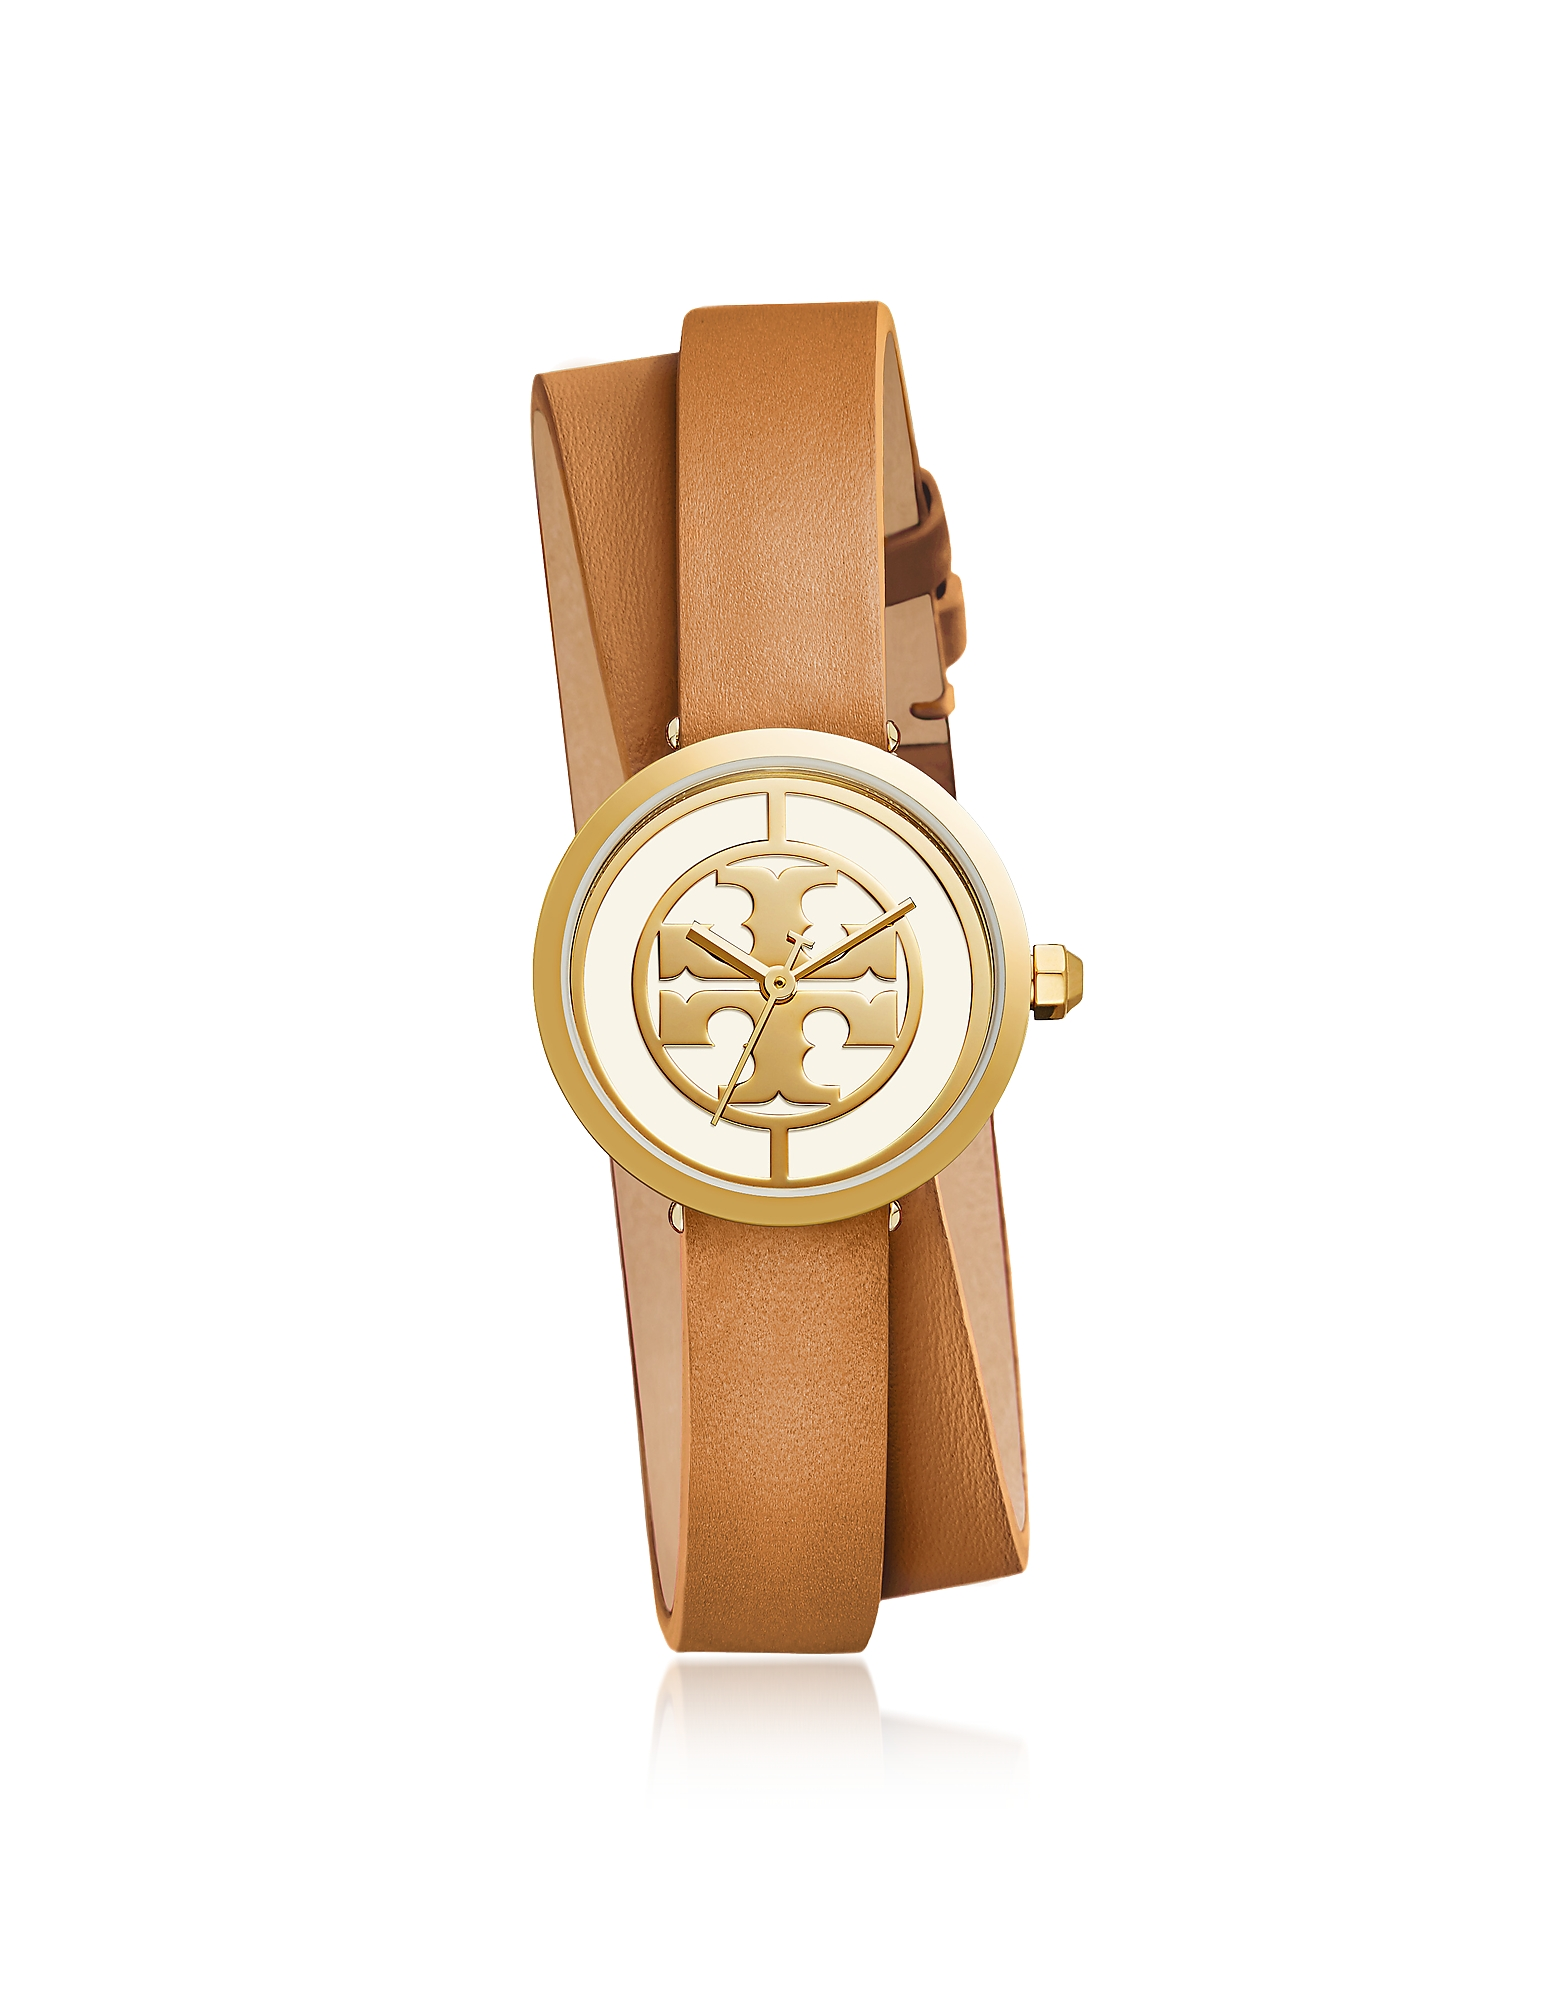 Tory Burch Women's Watches, TBW4018 The Reva Double Wrap Luggage Leather Women's Watch